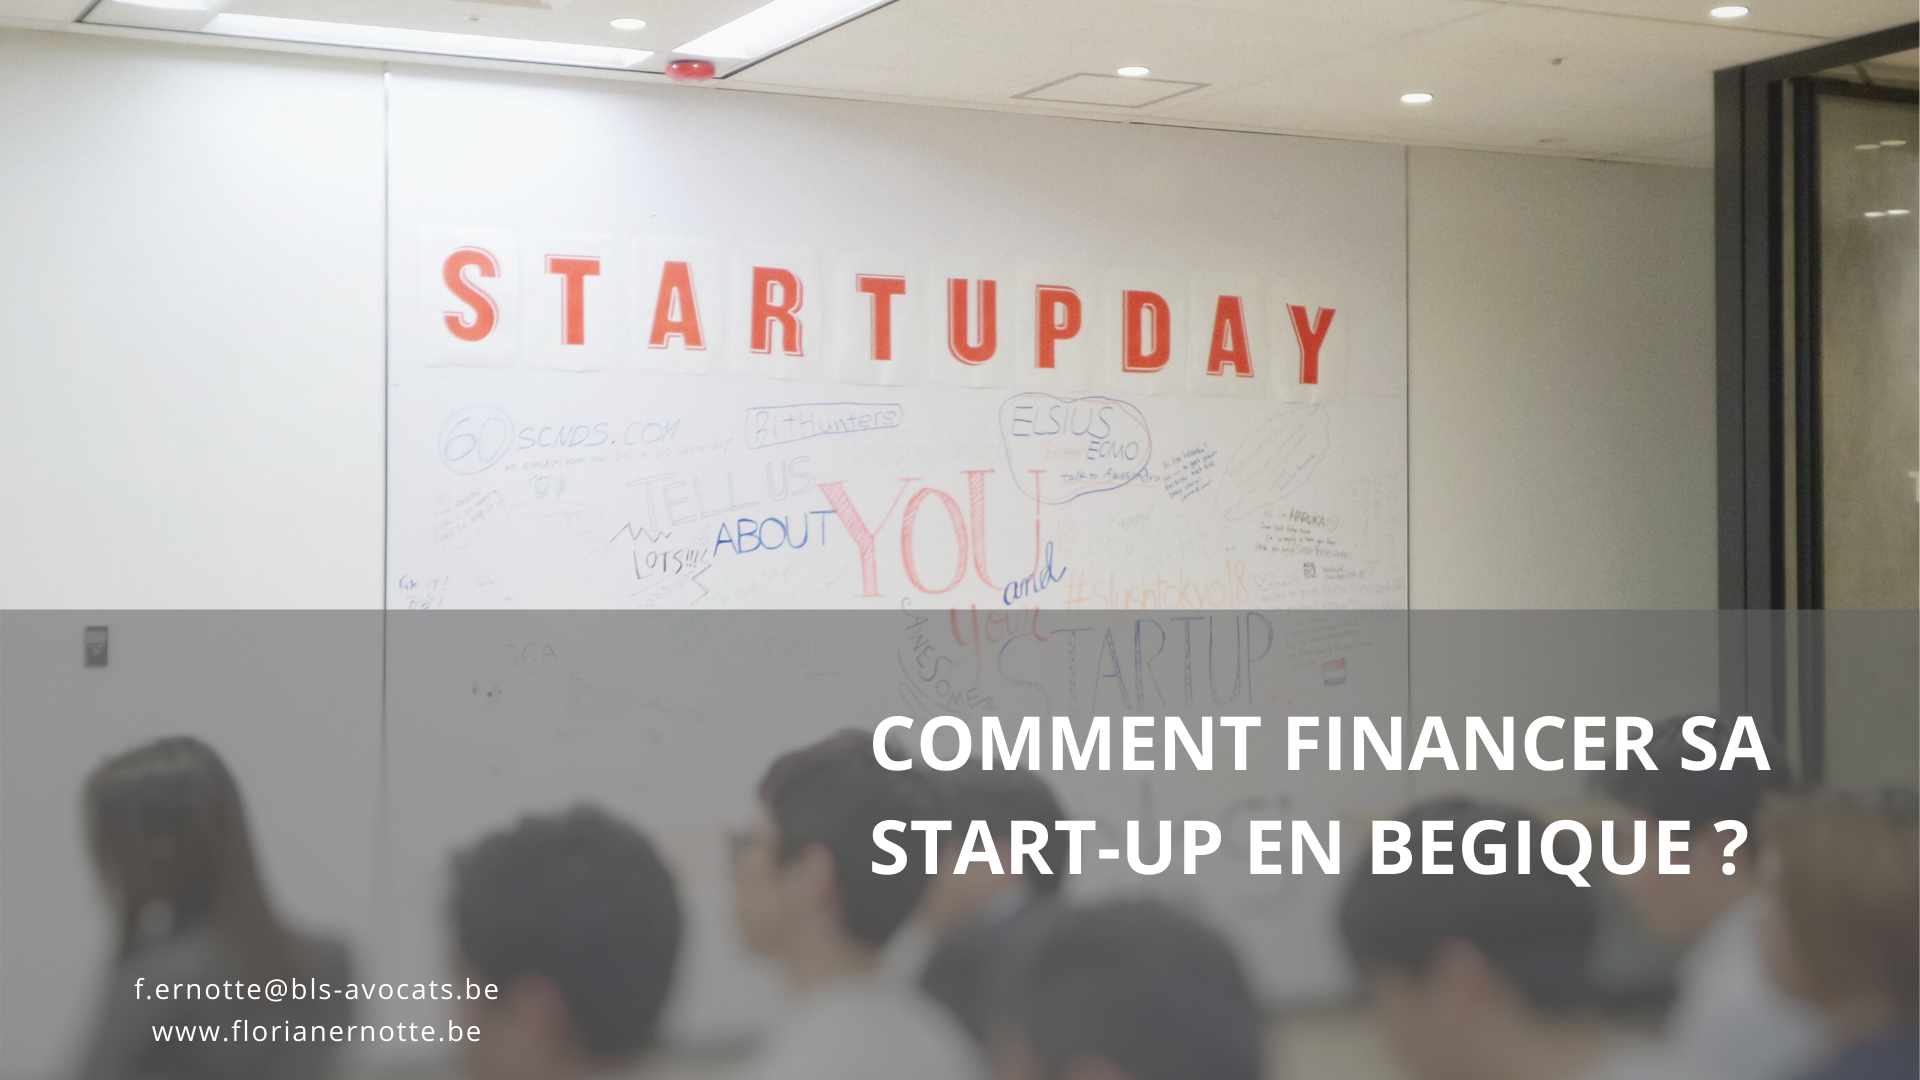 Comment financer sa start-up en Belgique?